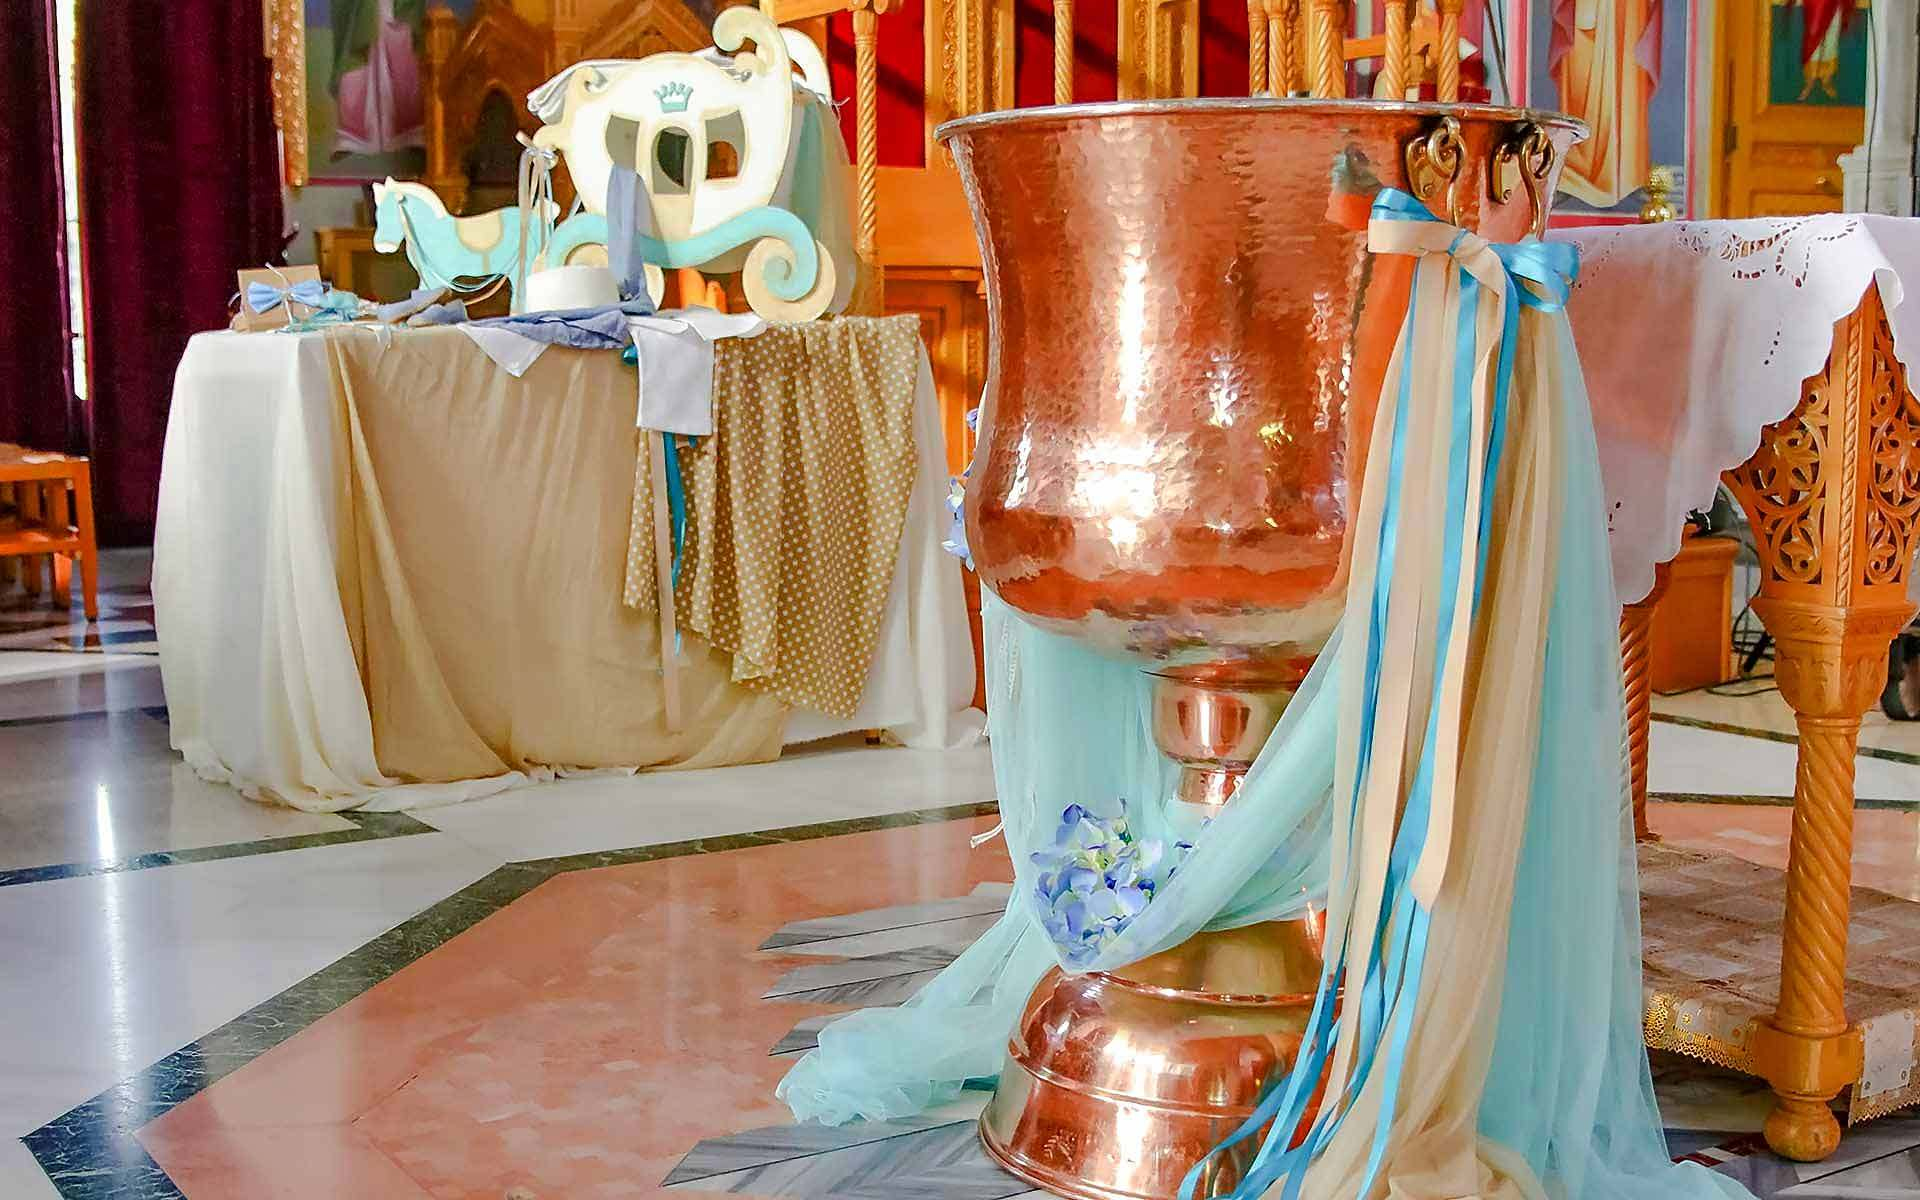 Turquoise-Fabrics-And-Ribbons-And-Blue-Hydrangeas-Are-Uniquely-Combined-To-Decorate-A-Rose-Gold-Baptistery